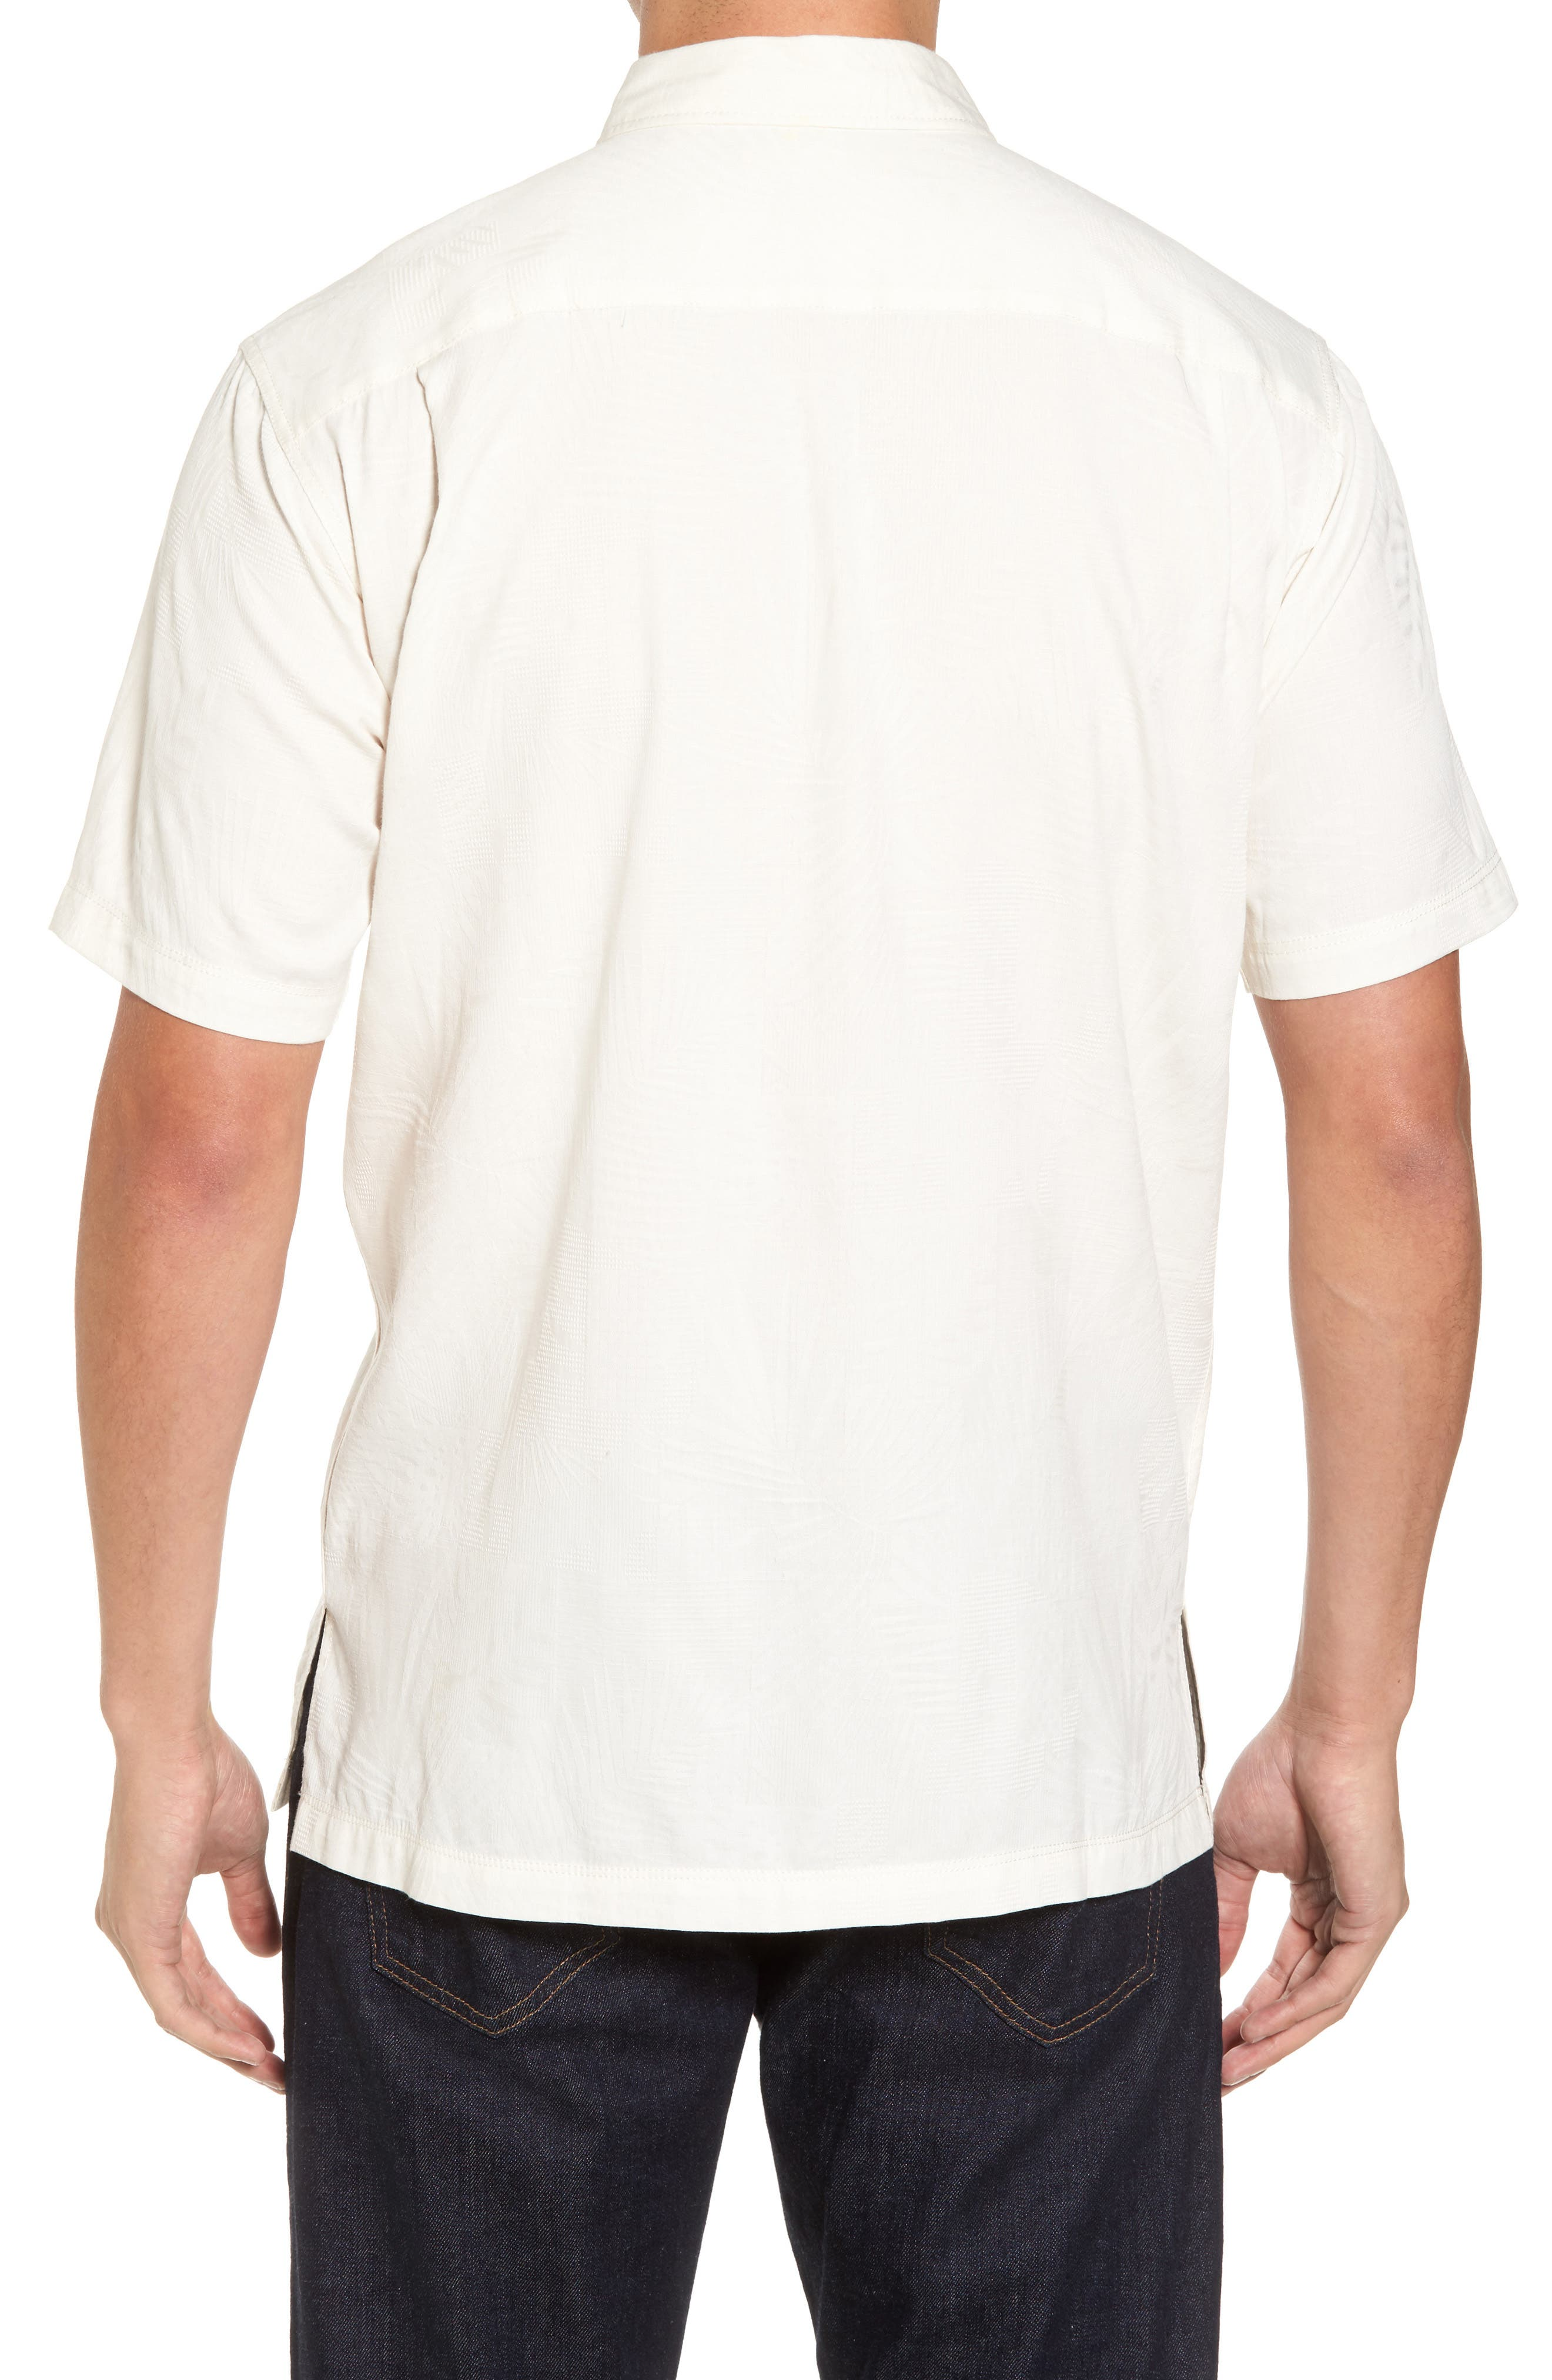 Milagro Classic Fit Sport Shirt,                             Alternate thumbnail 2, color,                             Eggshell